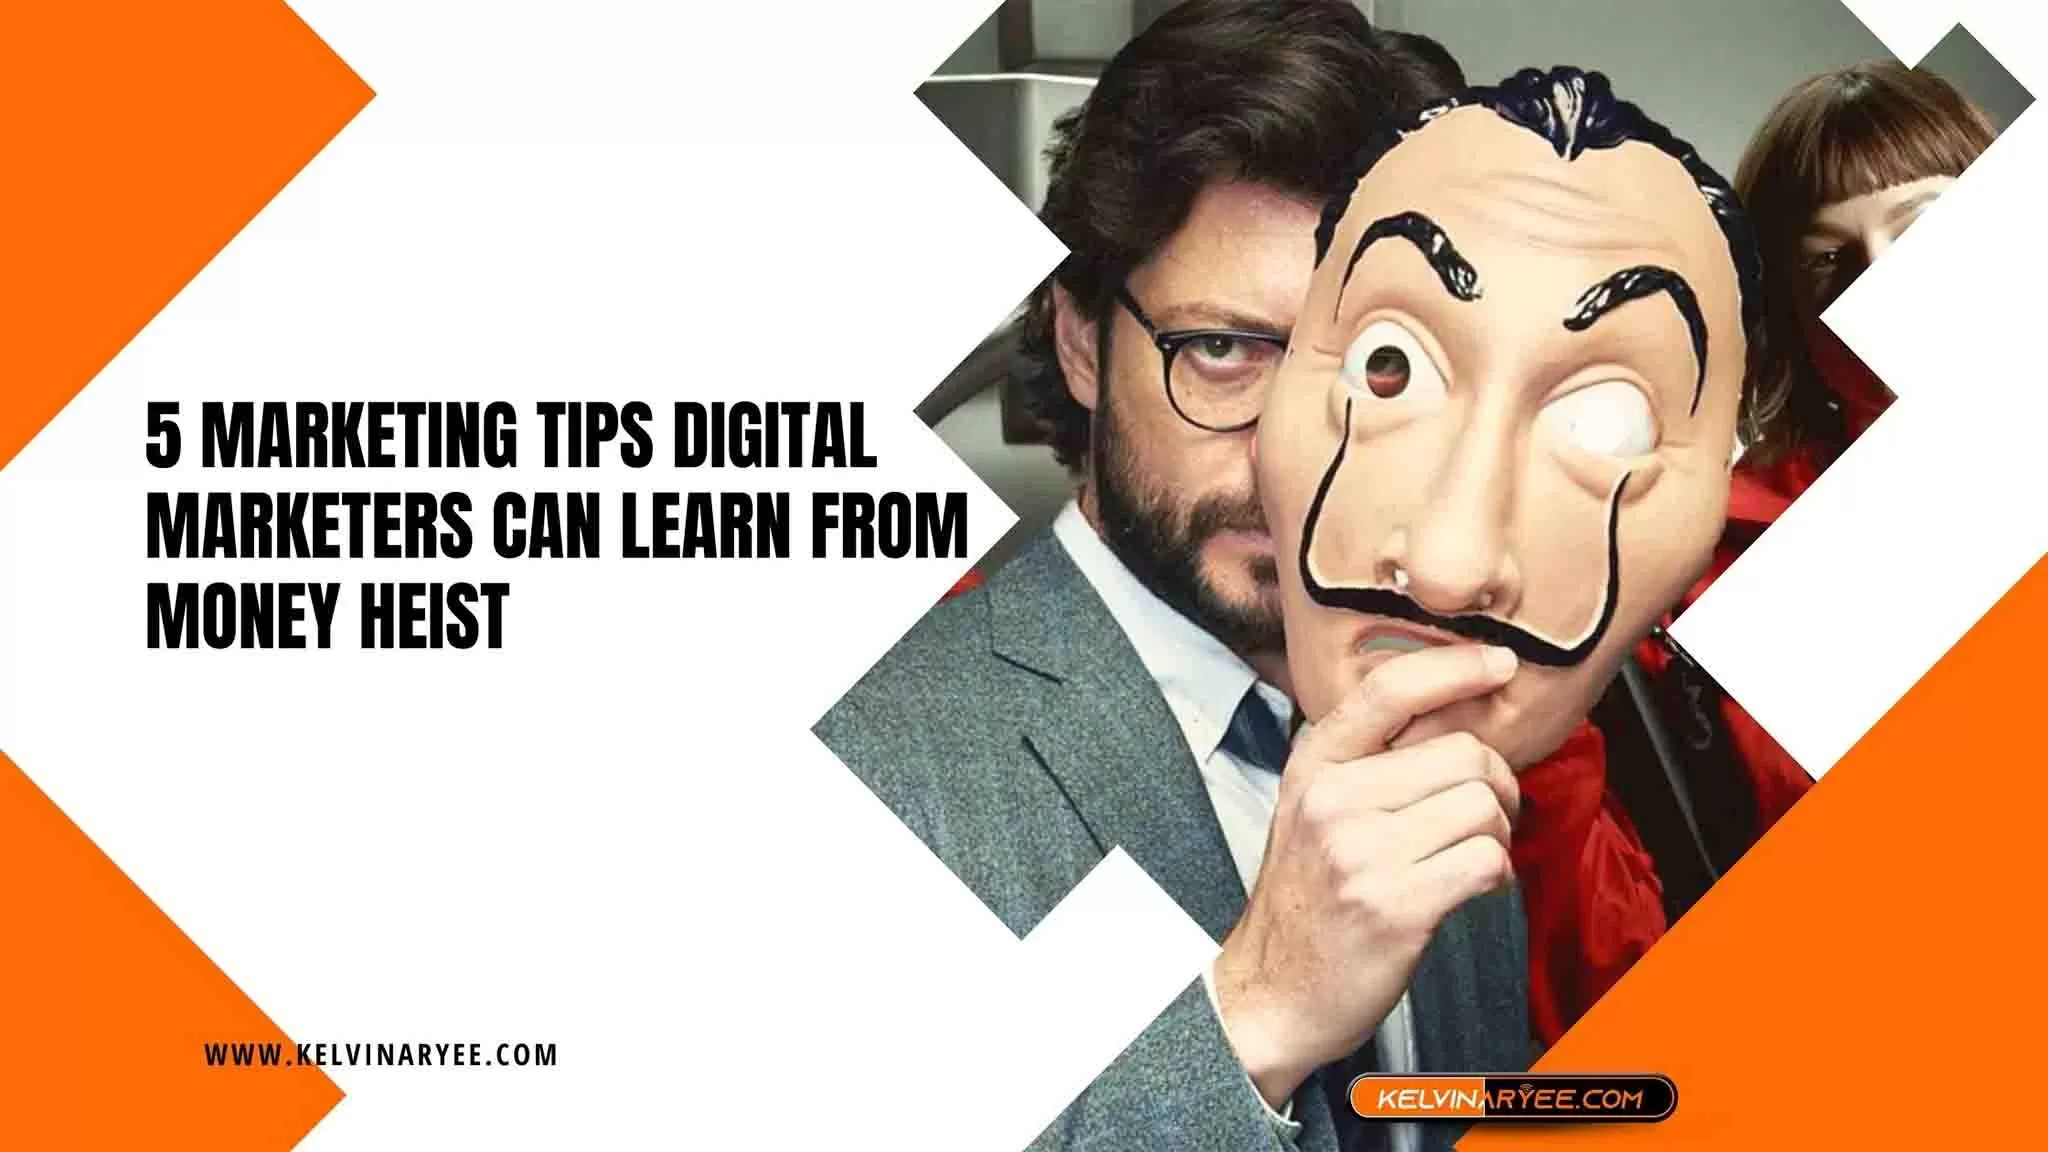 5 Marketing Tips Digital Marketers Can Learn from Money Heist